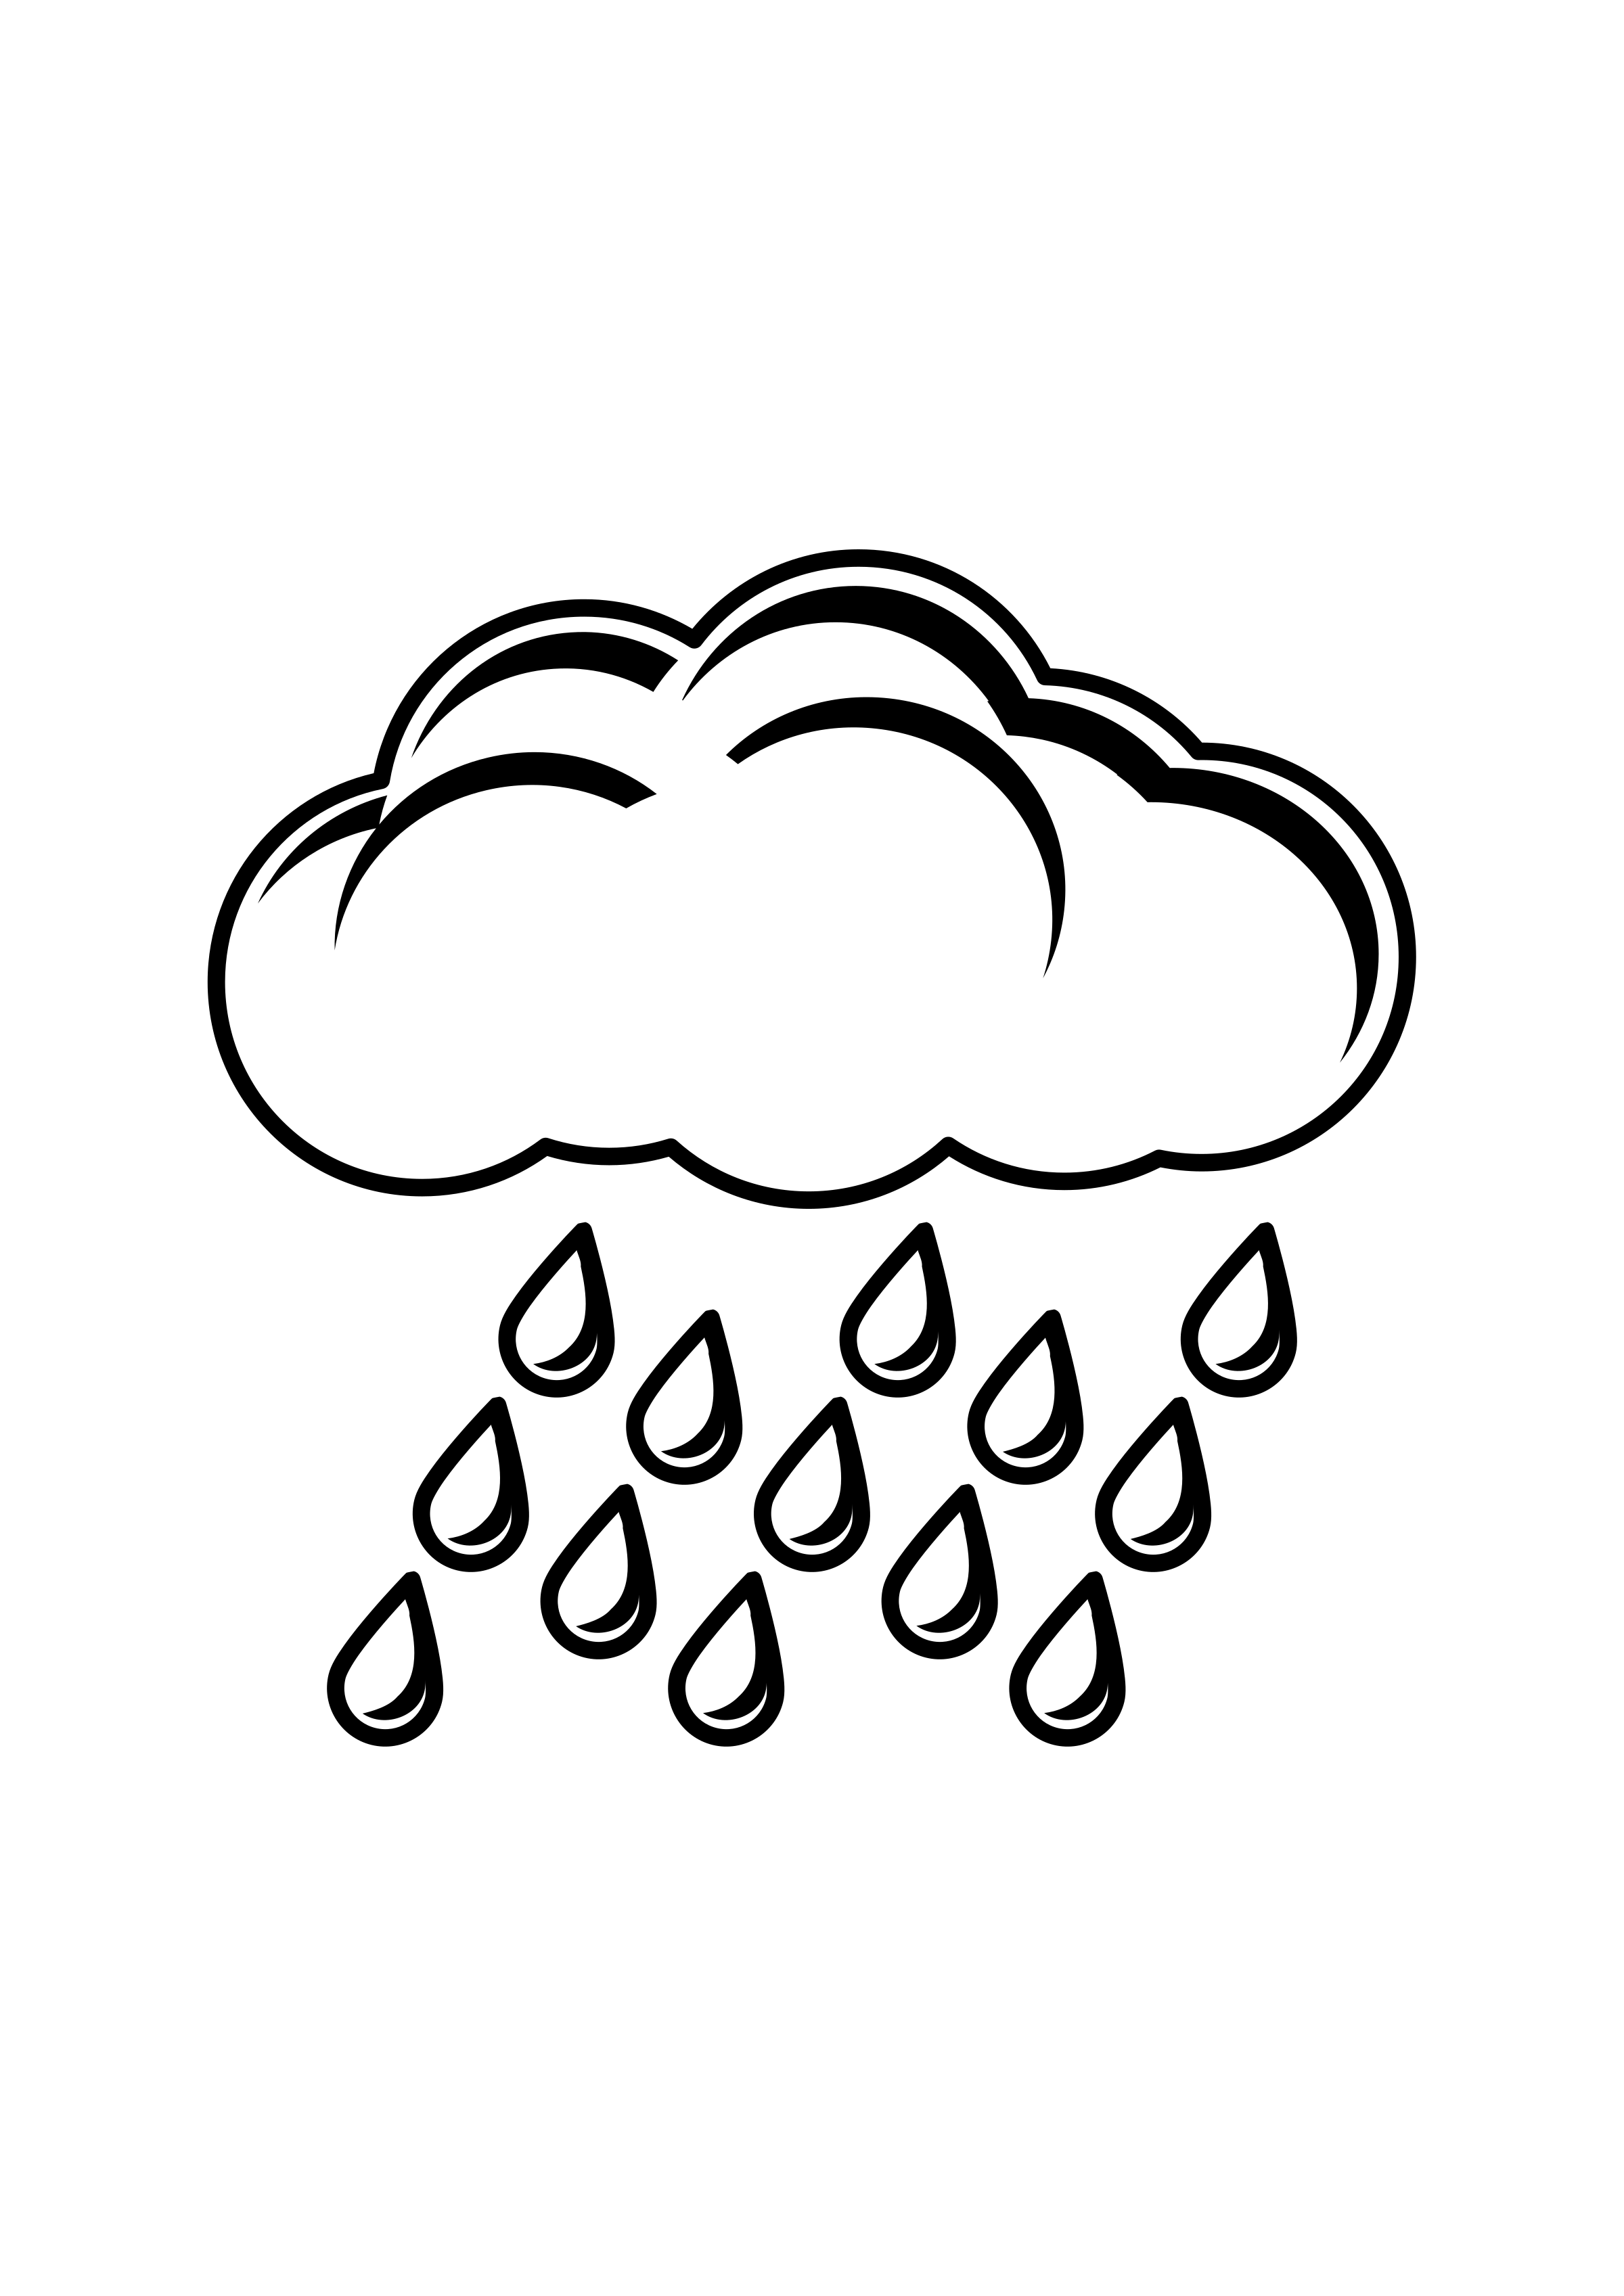 Raindrop clipart watr.  collection of drawing